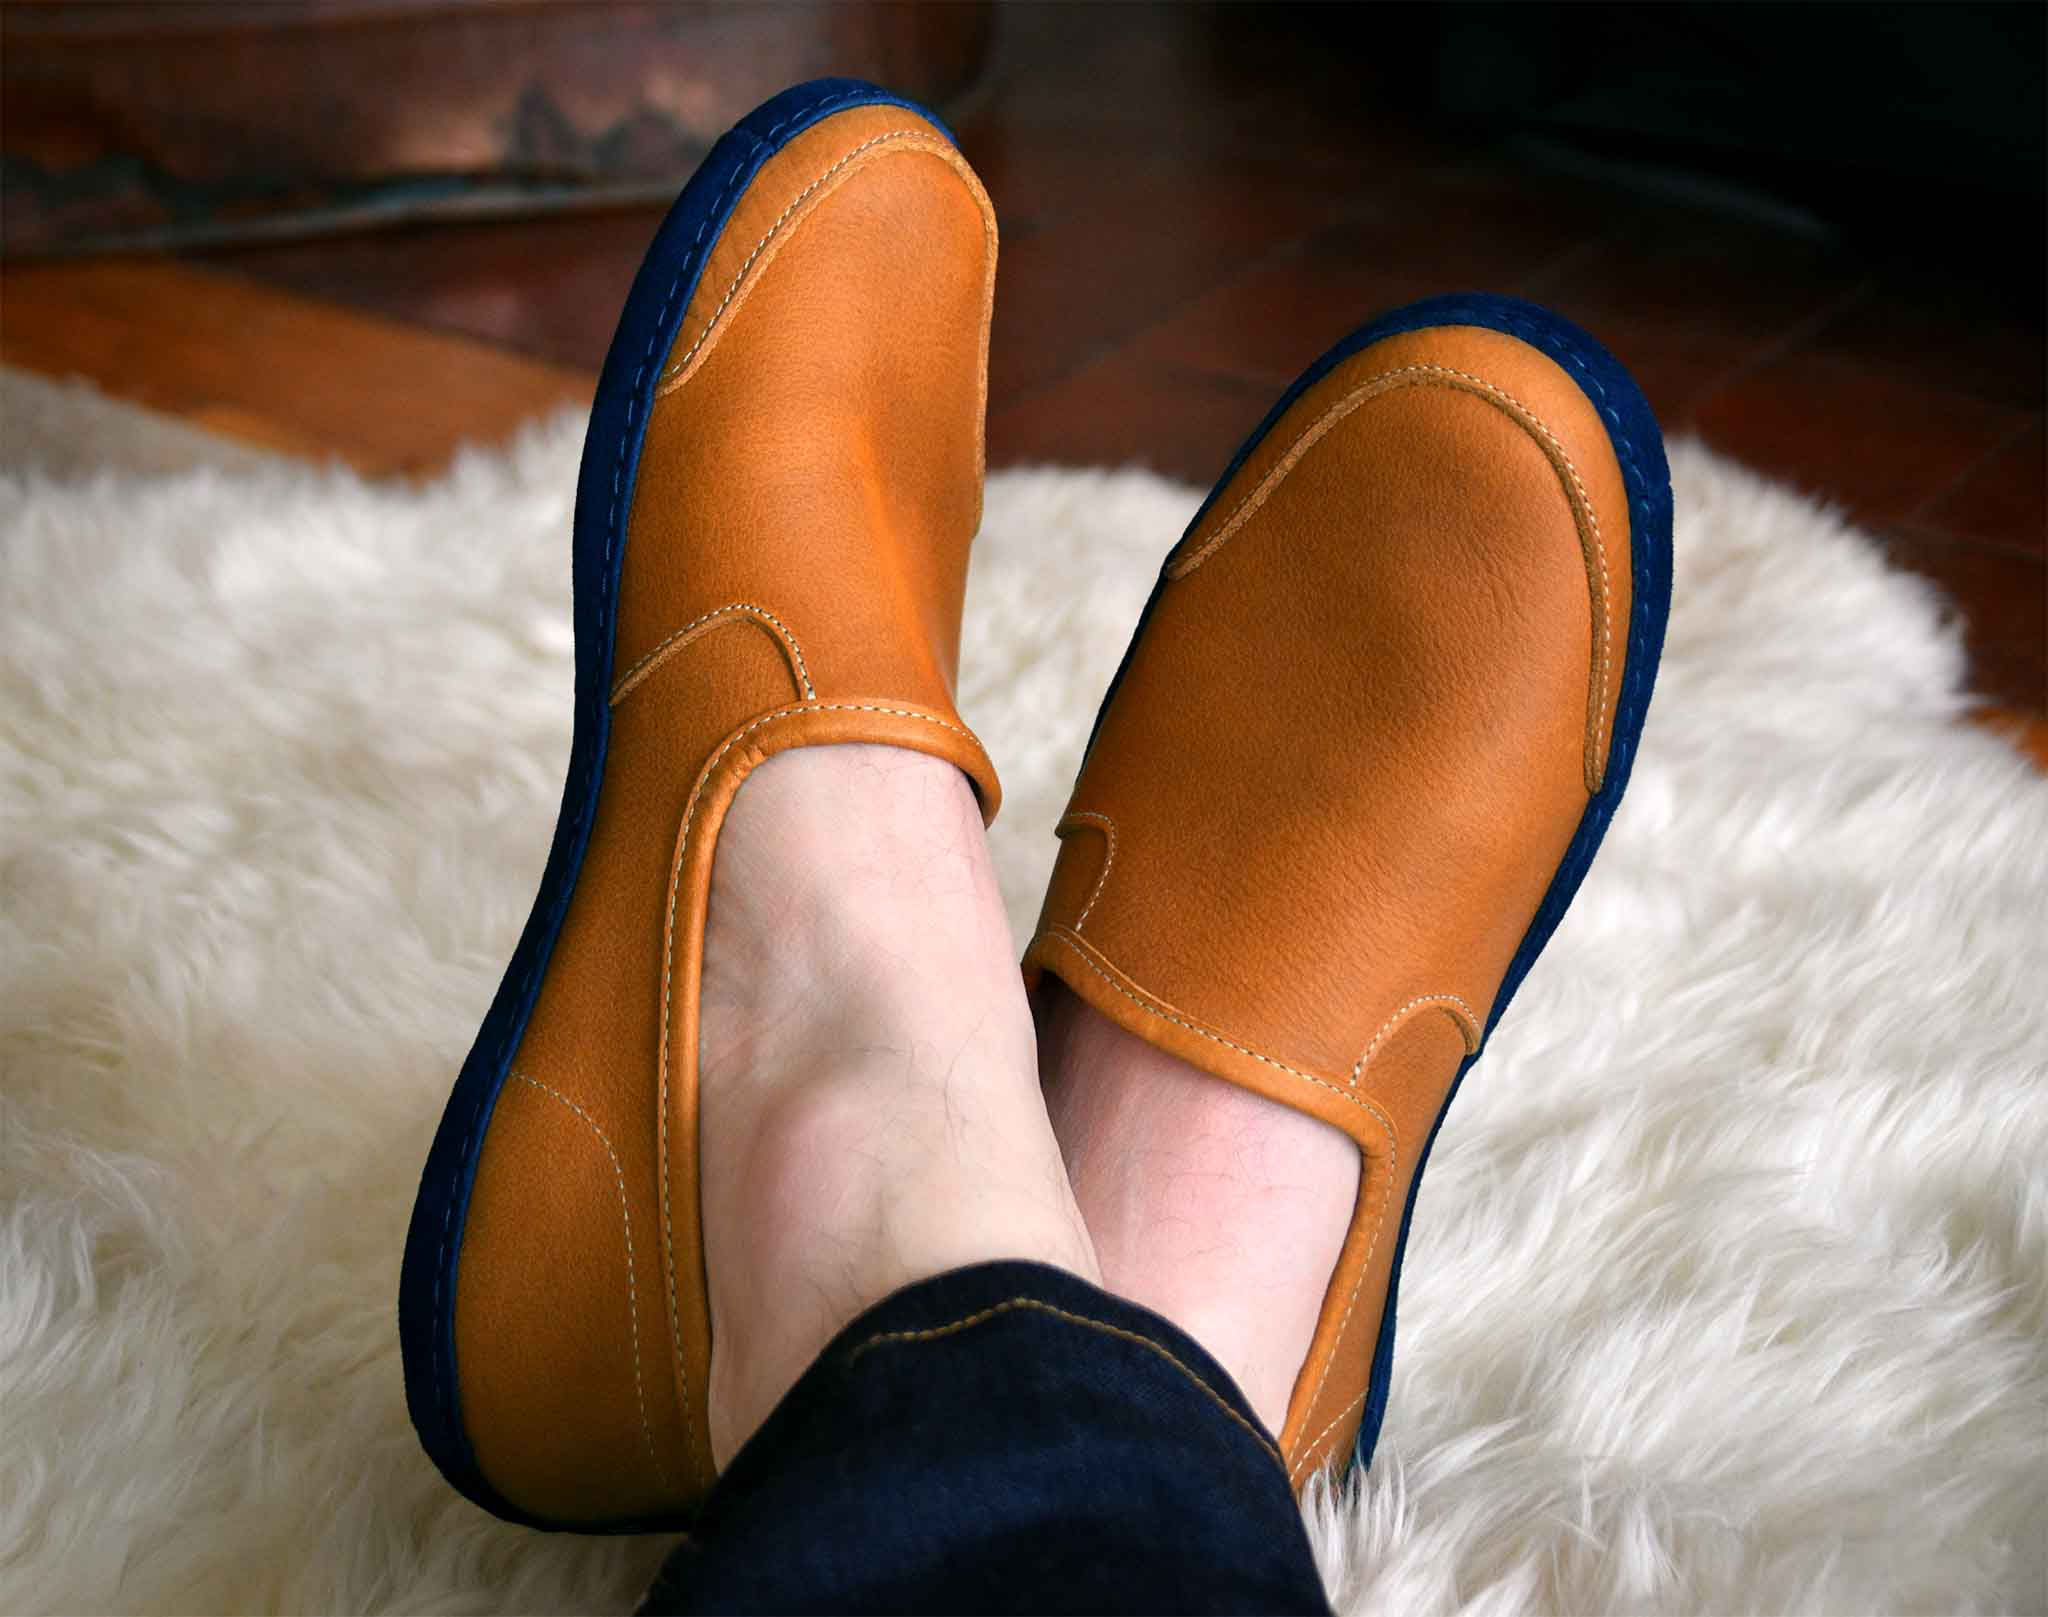 Vermont House Shoes: Loafer - Tan